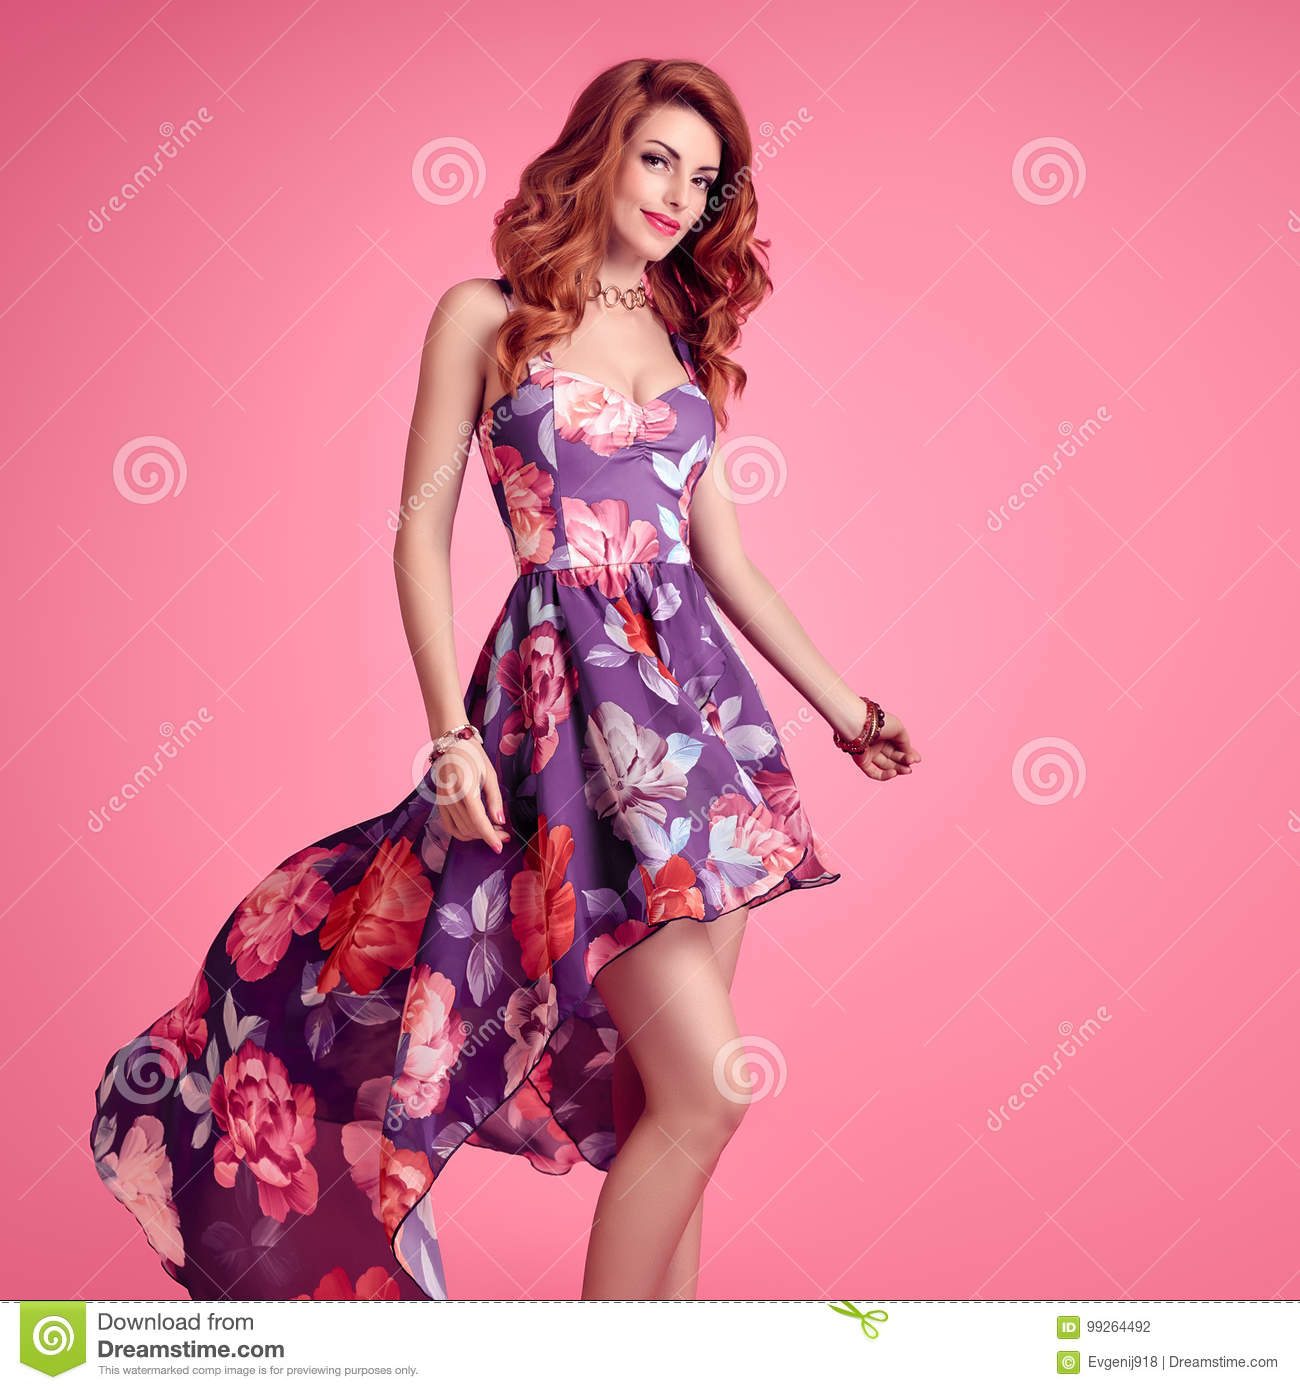 af2d1b851 Sensual Redhead woman in Fashion Trendy Floral summer Dress Smiling. Beauty  Model in fashion pose. Stylish Curly Wavy hairstyle